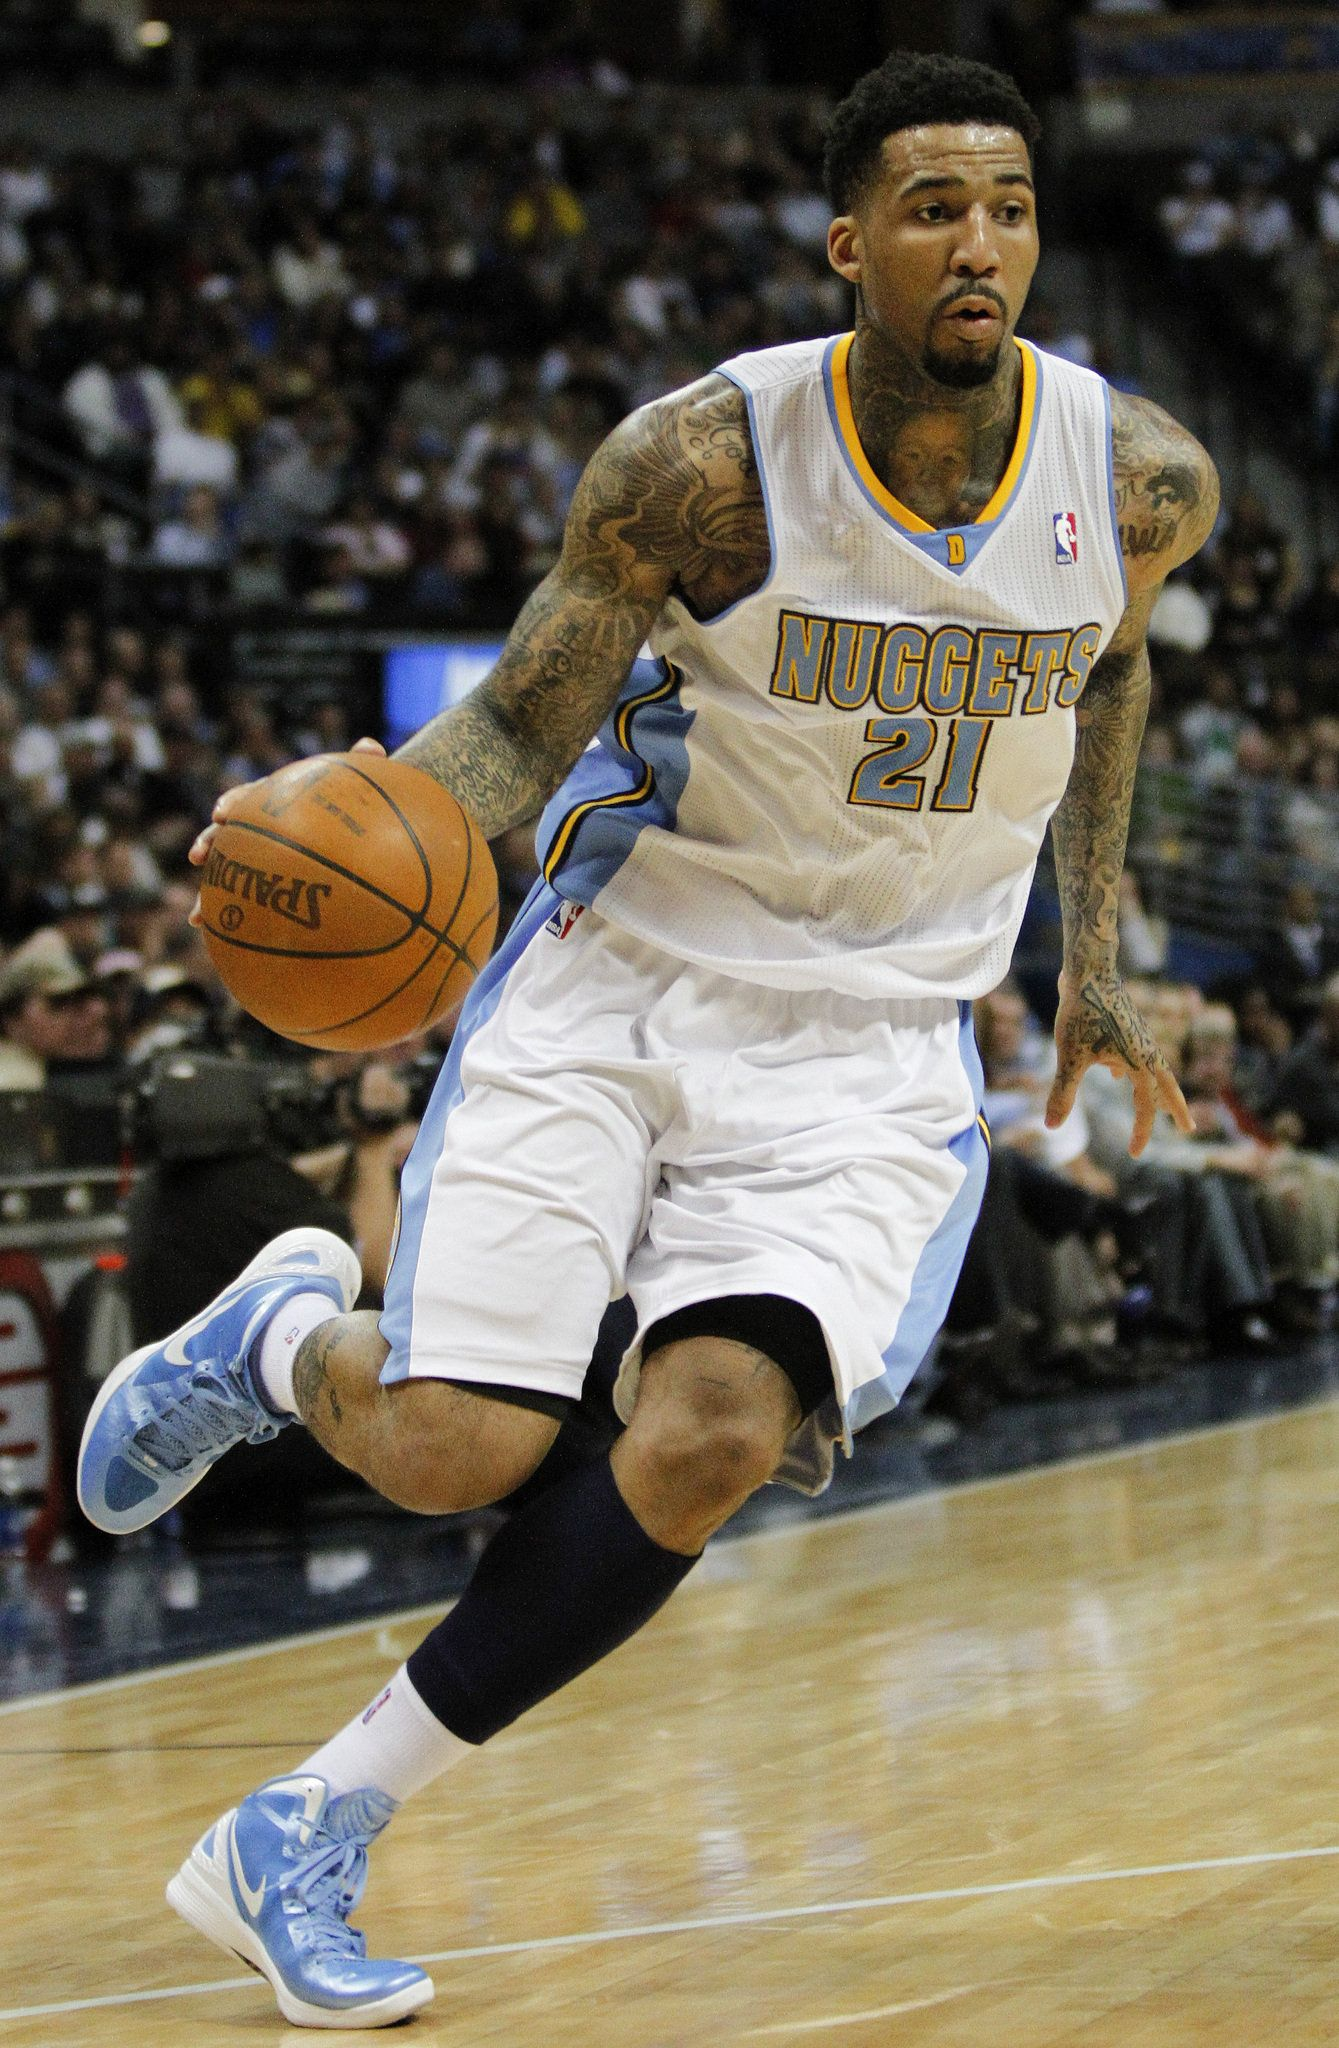 NBA forward Wilson Chandler is from my hometown he inspired me to ...